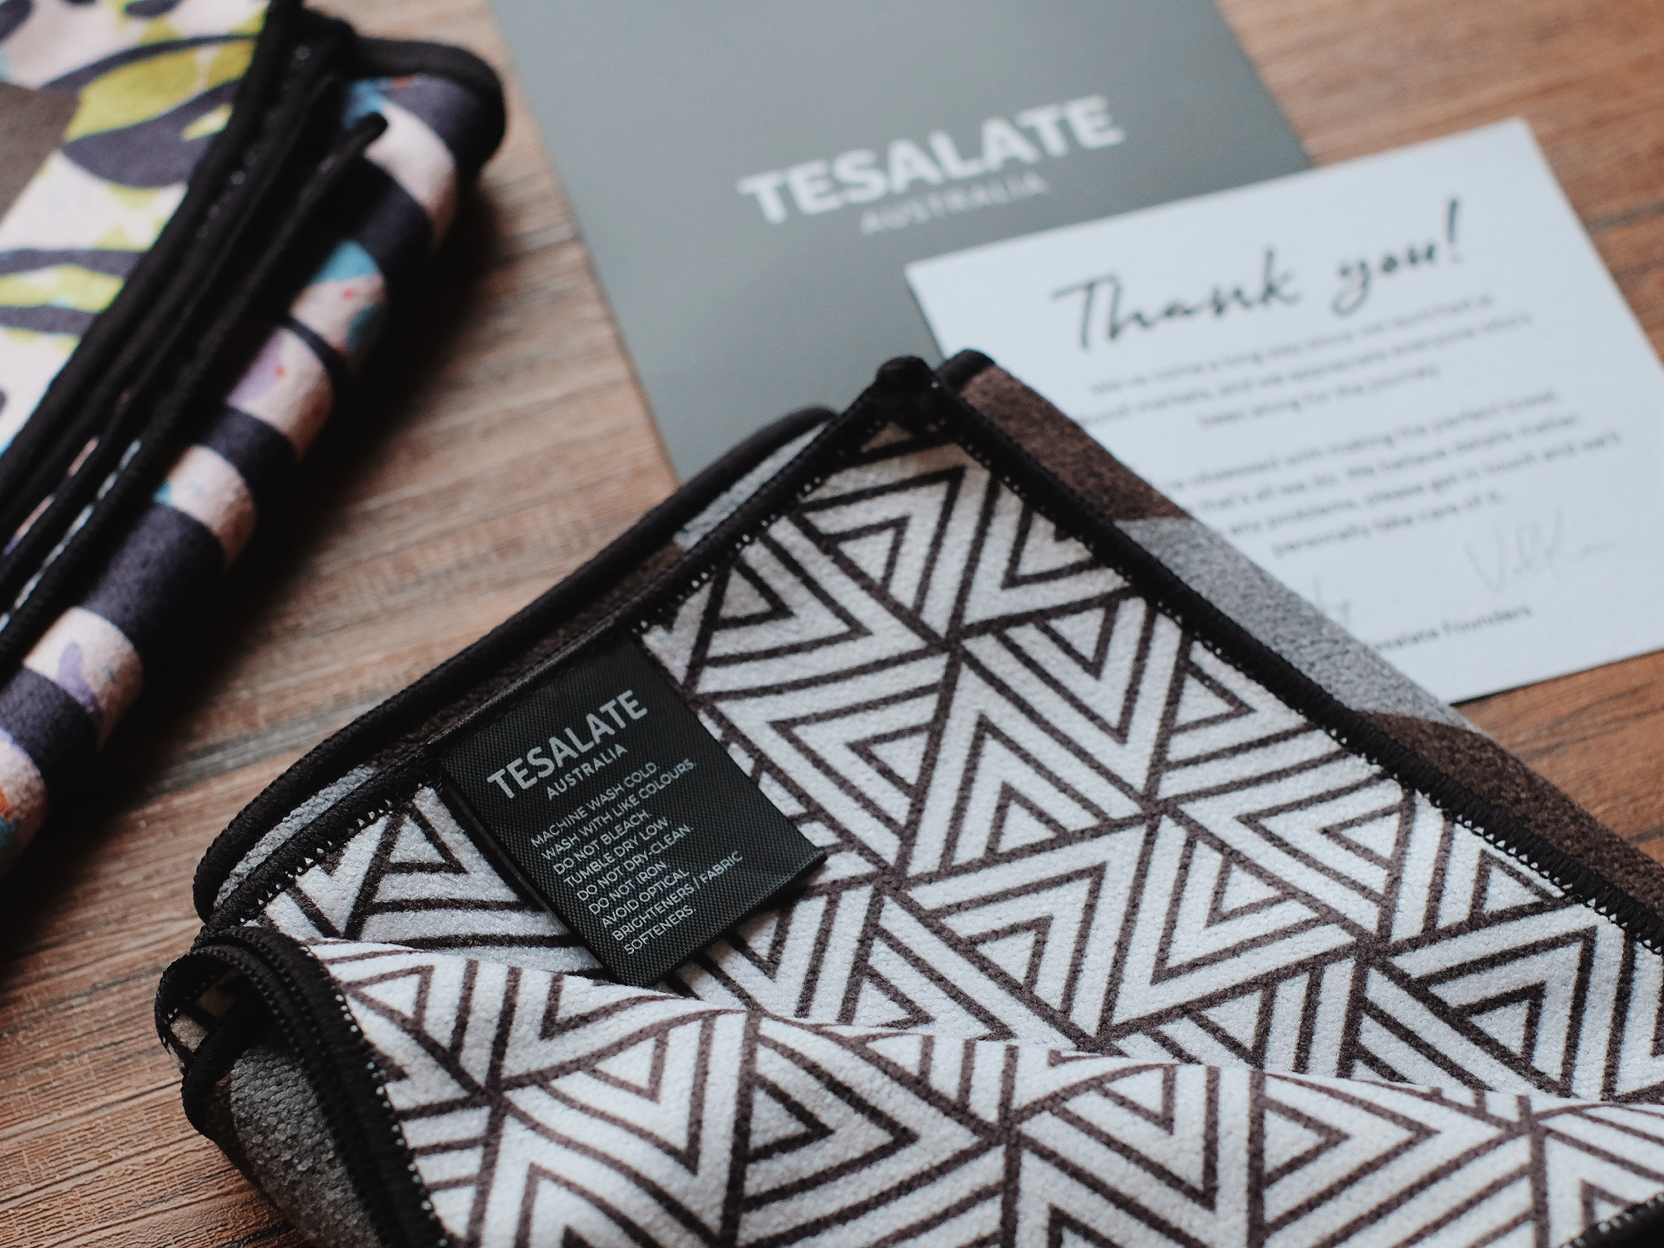 Tesalate Anti-Bacterial Workout Towels Review